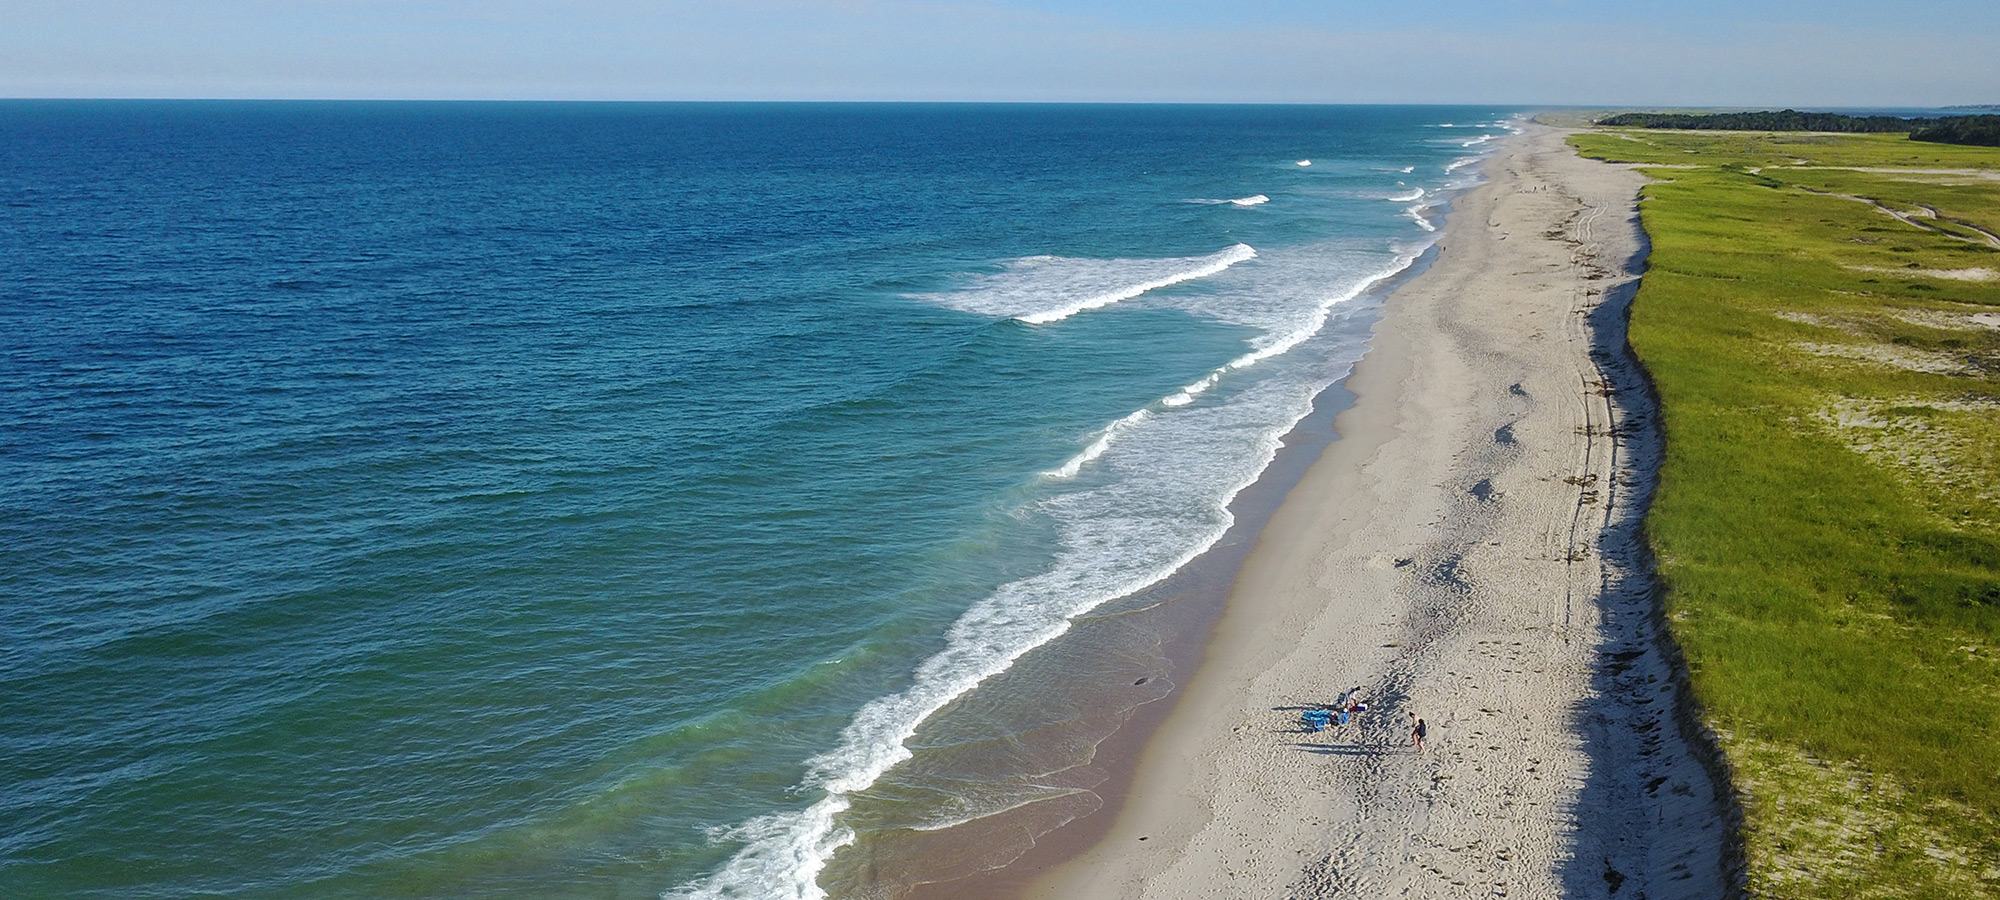 10 Best Beach Vacation Destinations in the U.S.